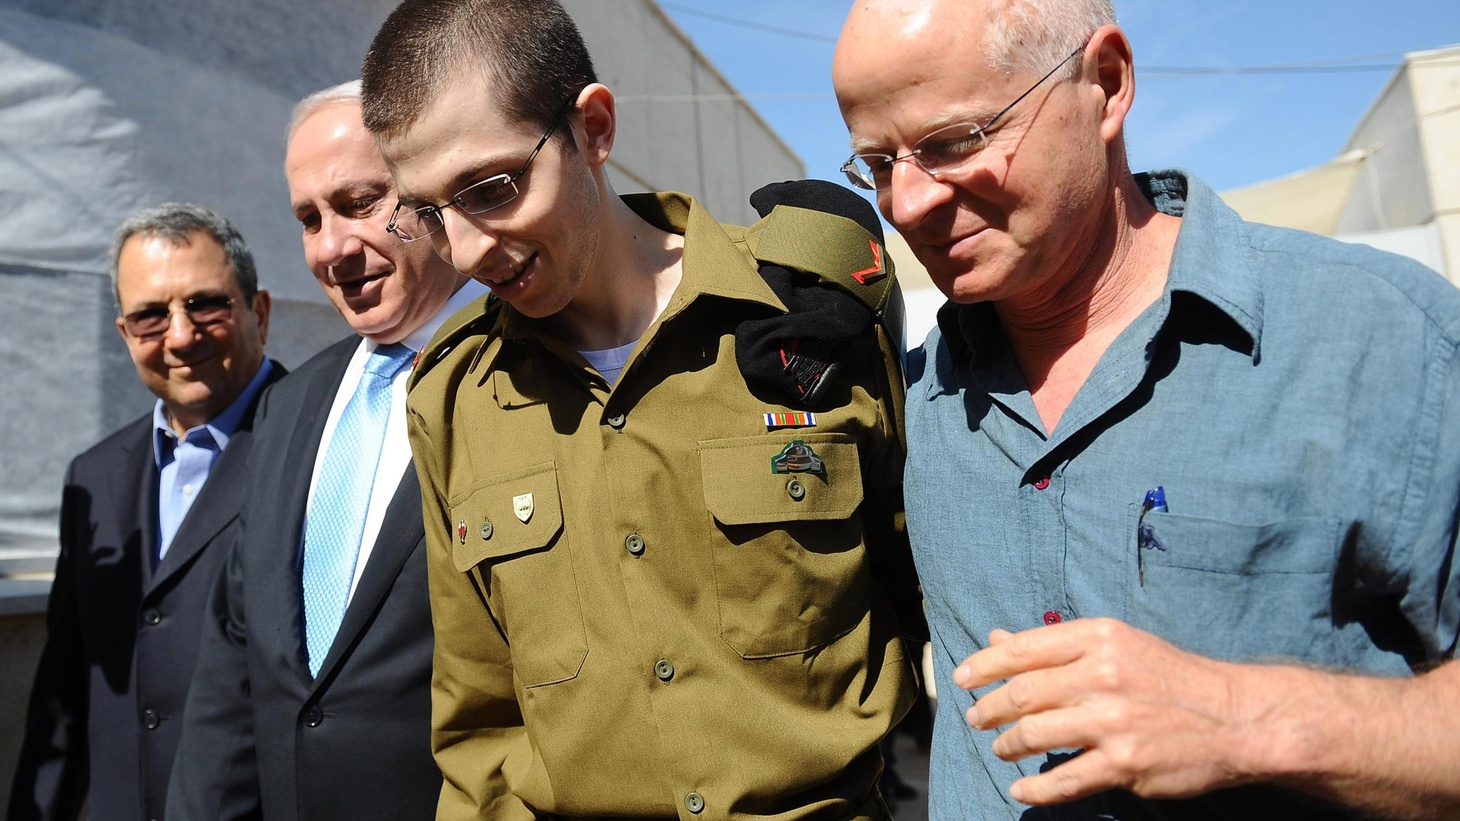 After five years in the Gaza Strip, a captured Israeli soldier has been returned, and Israel has begun to release more than 1000 Palestinian prisoners. On both sides...